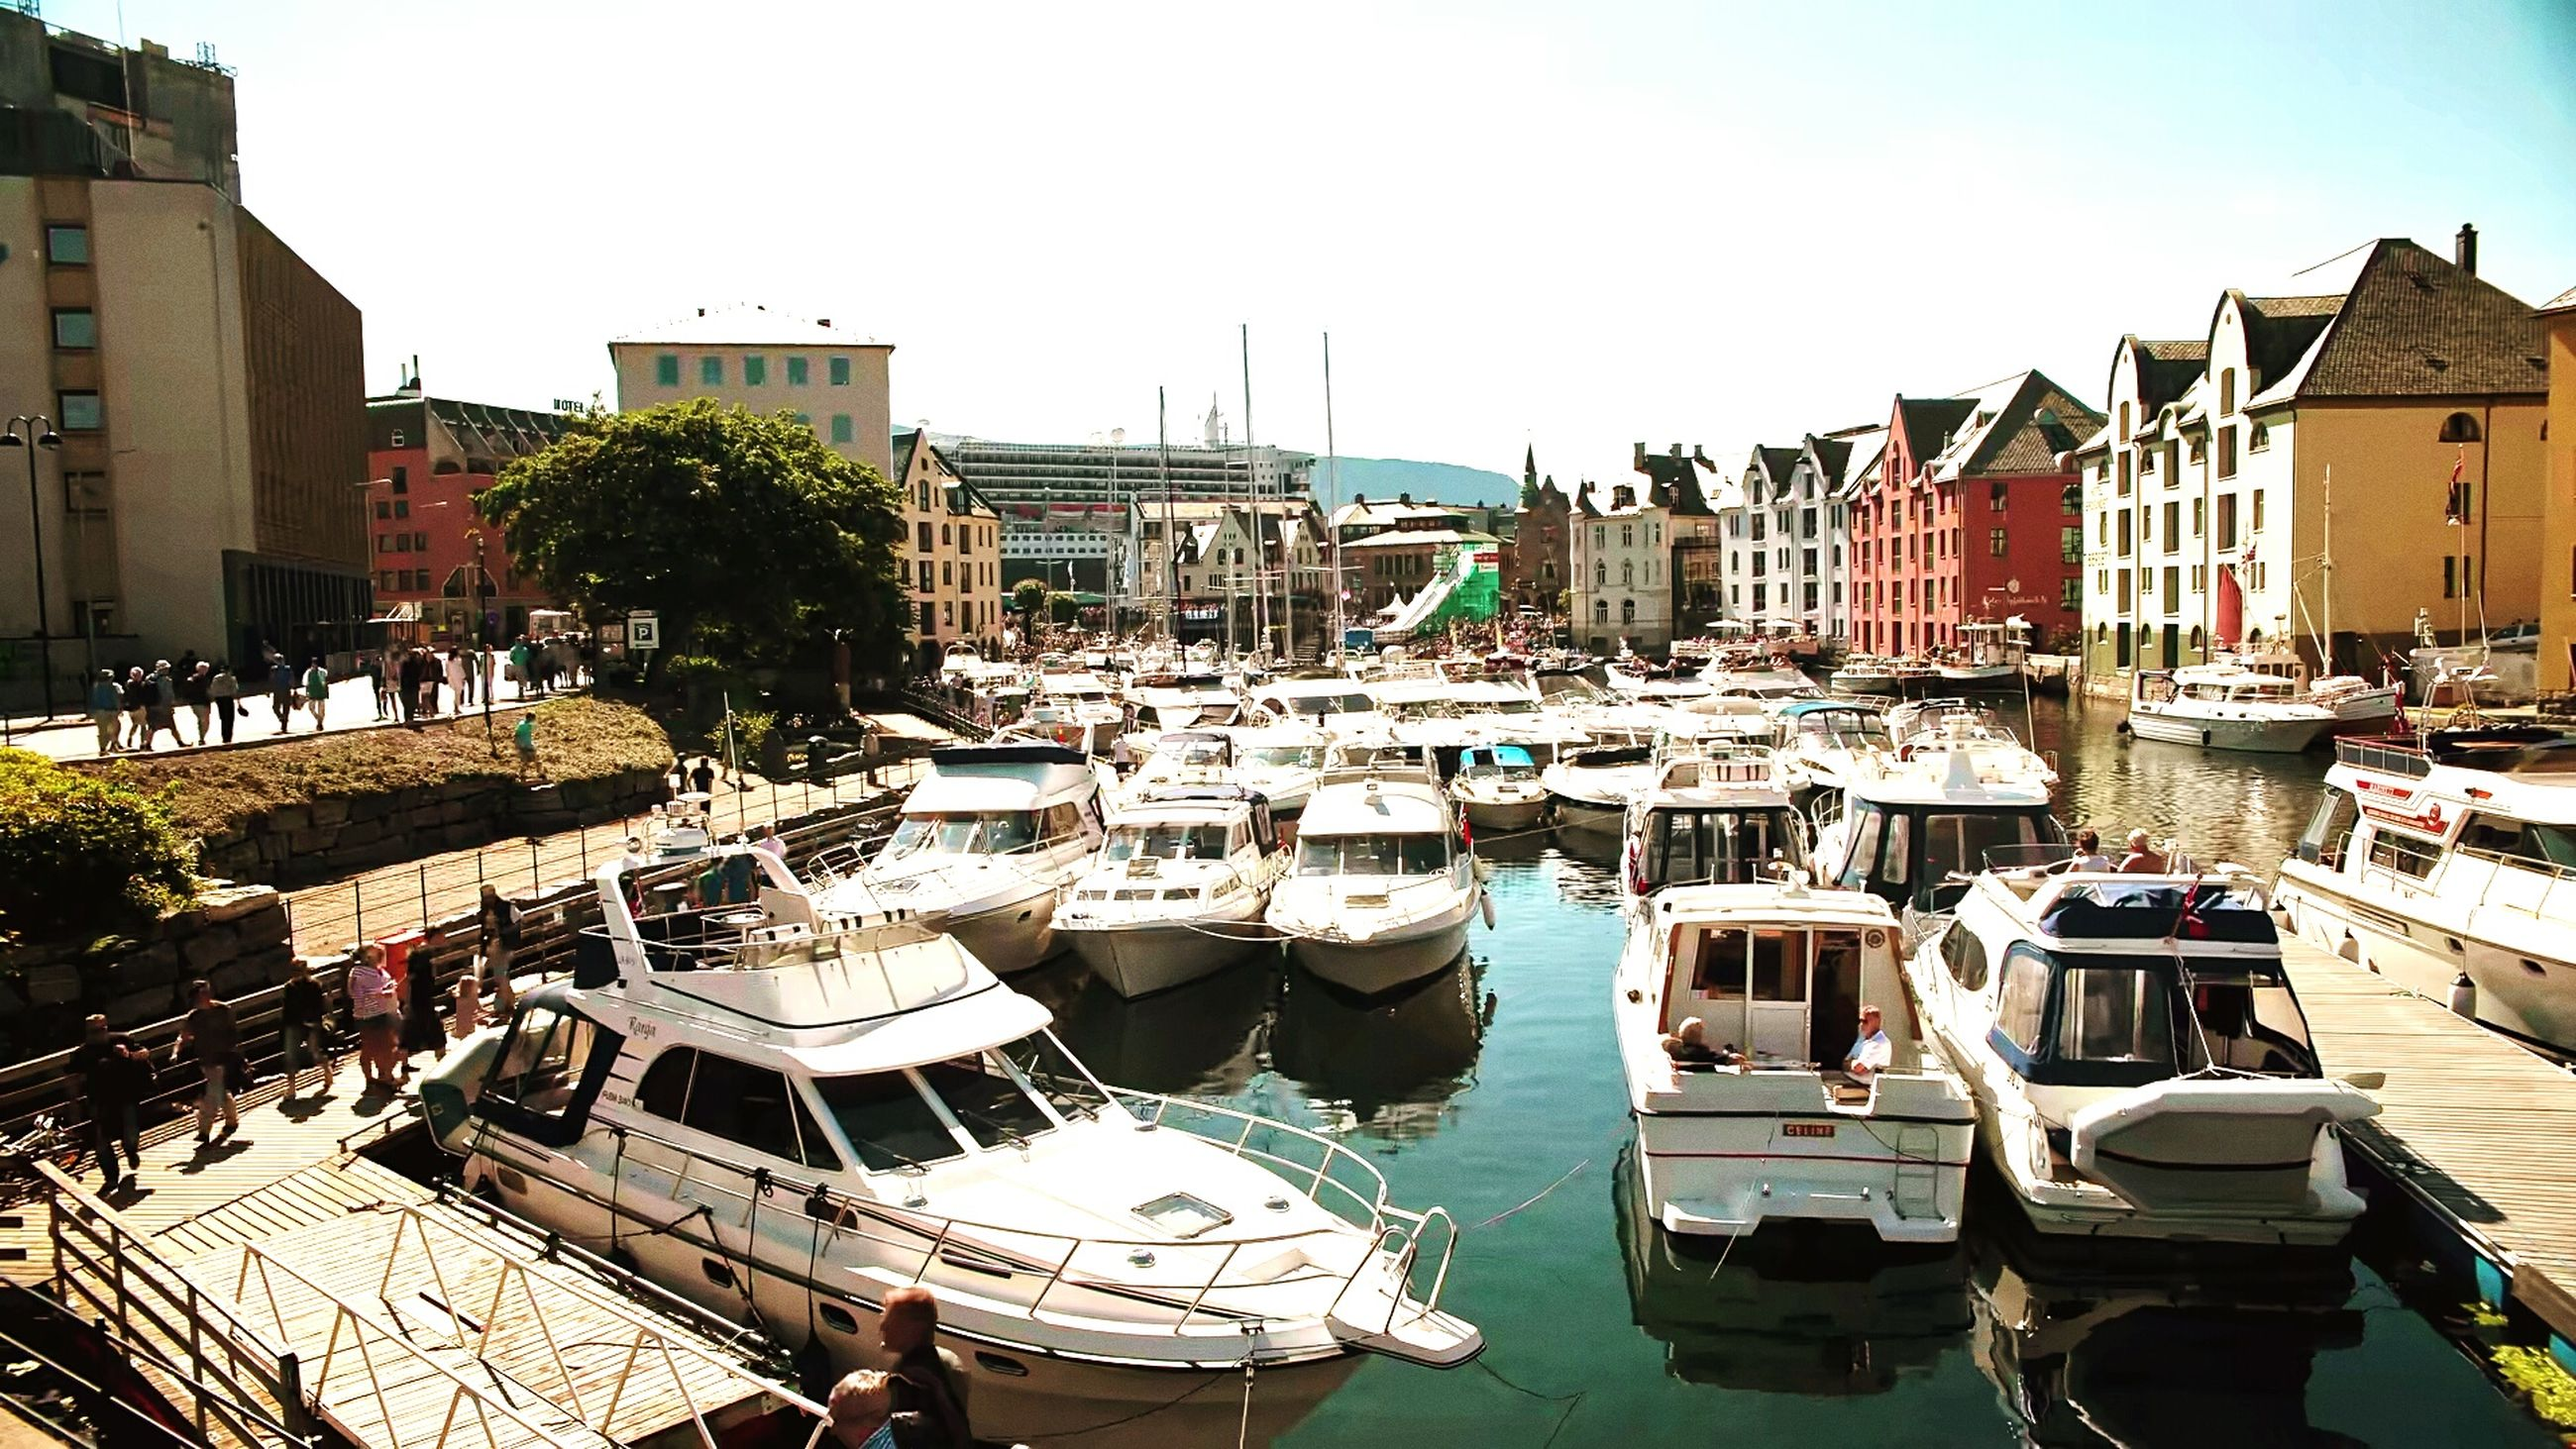 building exterior, nautical vessel, architecture, moored, built structure, boat, water, transportation, mode of transport, harbor, city, residential building, high angle view, residential structure, canal, clear sky, sea, house, town, sky